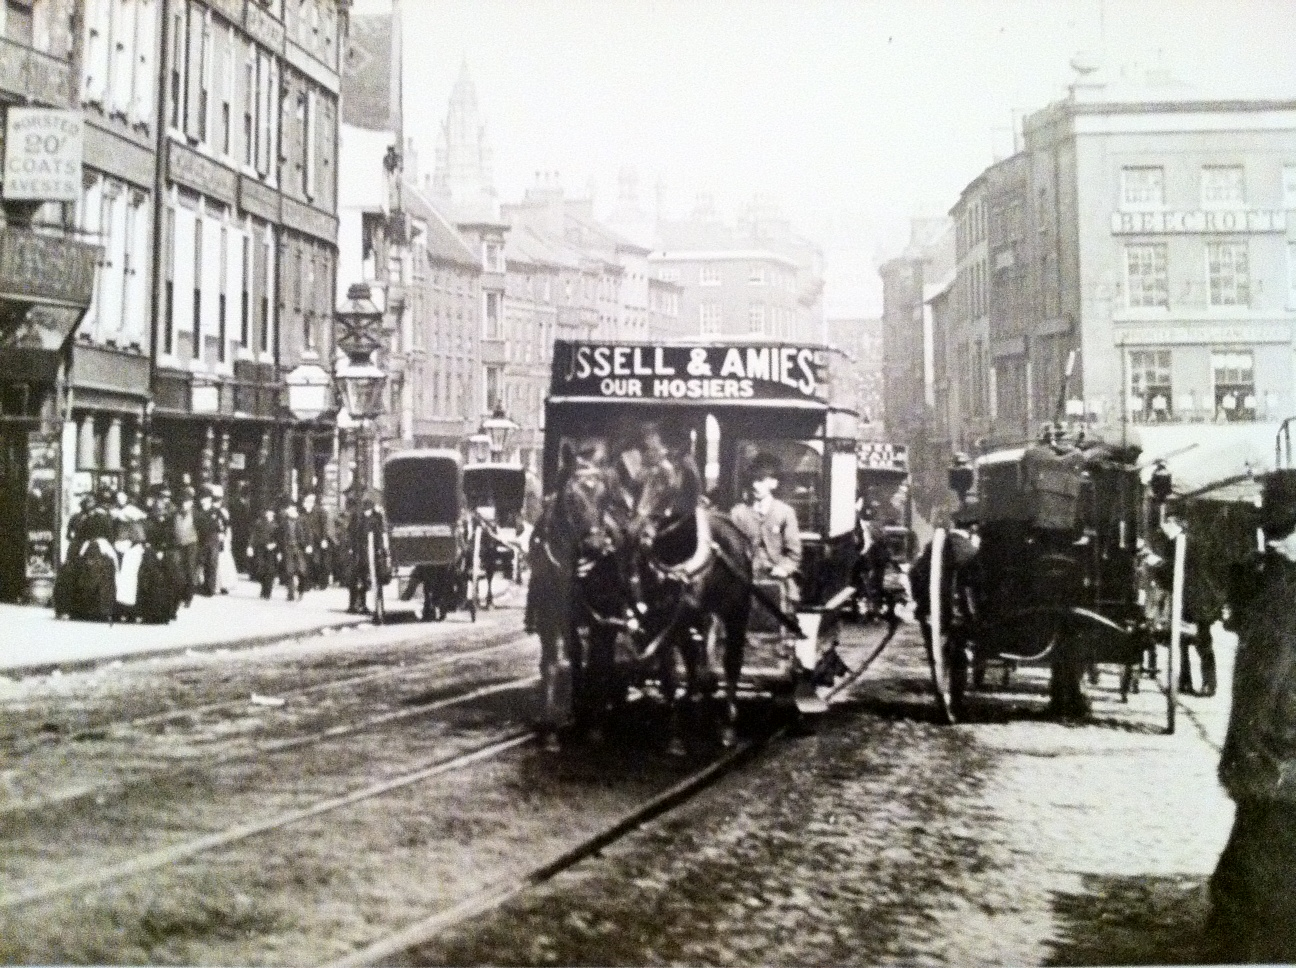 Horse_tram_on_Long_Row,_Nottingham.JPG